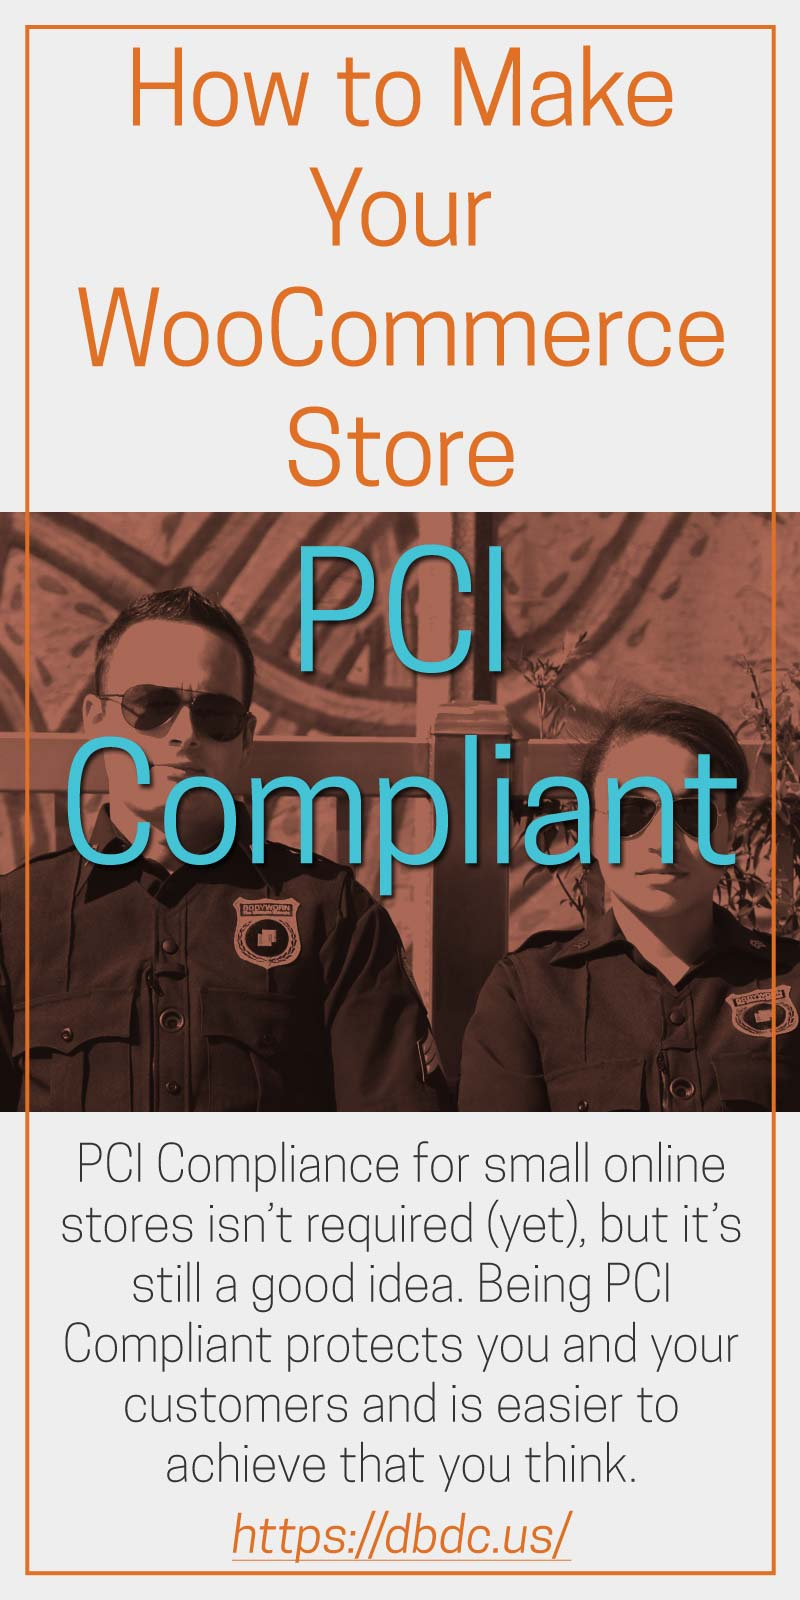 How to Make Your WooCommerce Store PCI Compliant the Easy